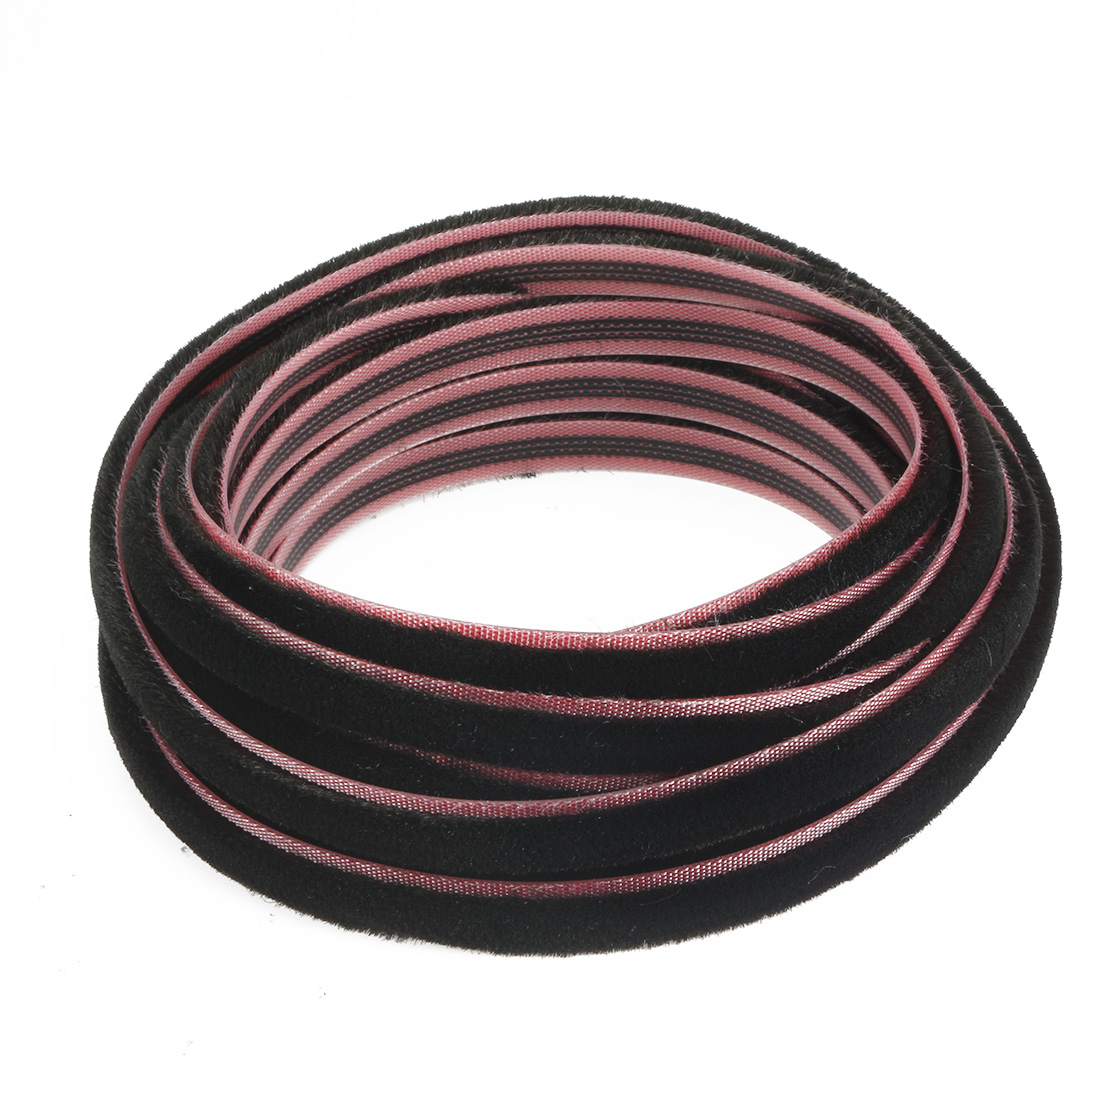 Window Weather Seal Strip 3/8-Inch x 1/4-Inch x 19.7 Feet